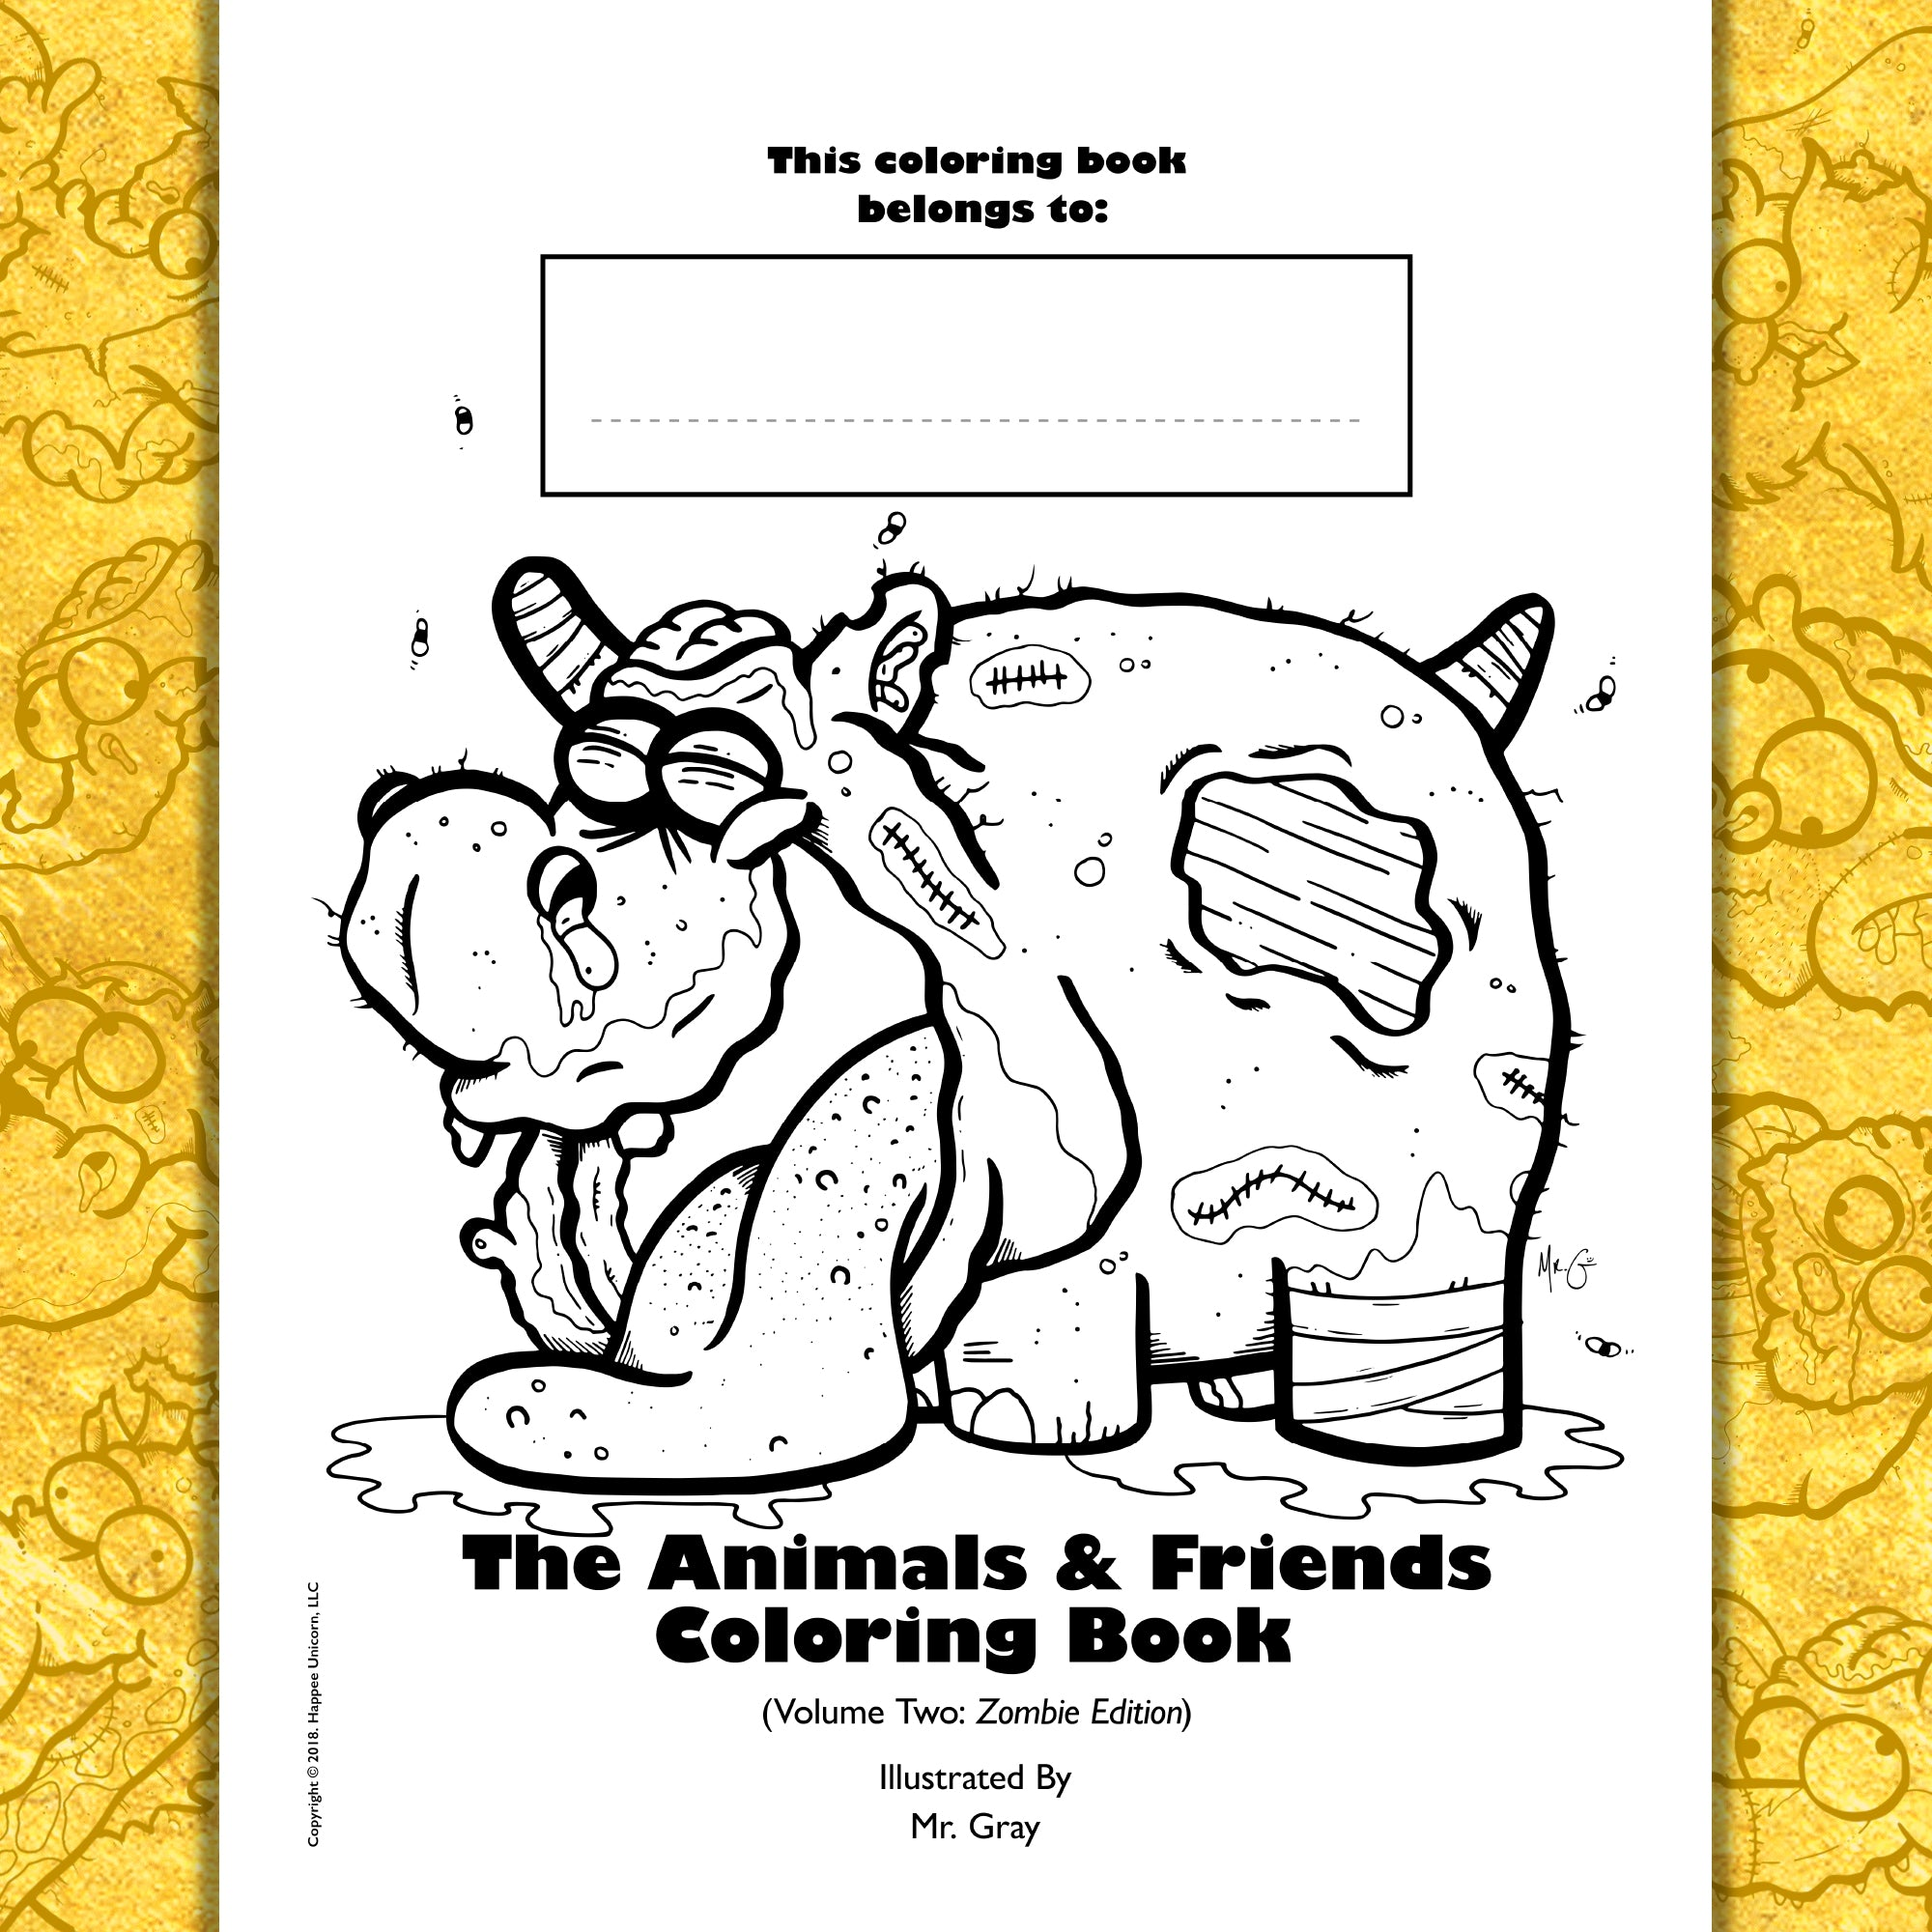 copyright-©-2018-the-animals-and-friends-coloring-book-zombie-edition-volume-two-by-mr-gray-look-inside-01